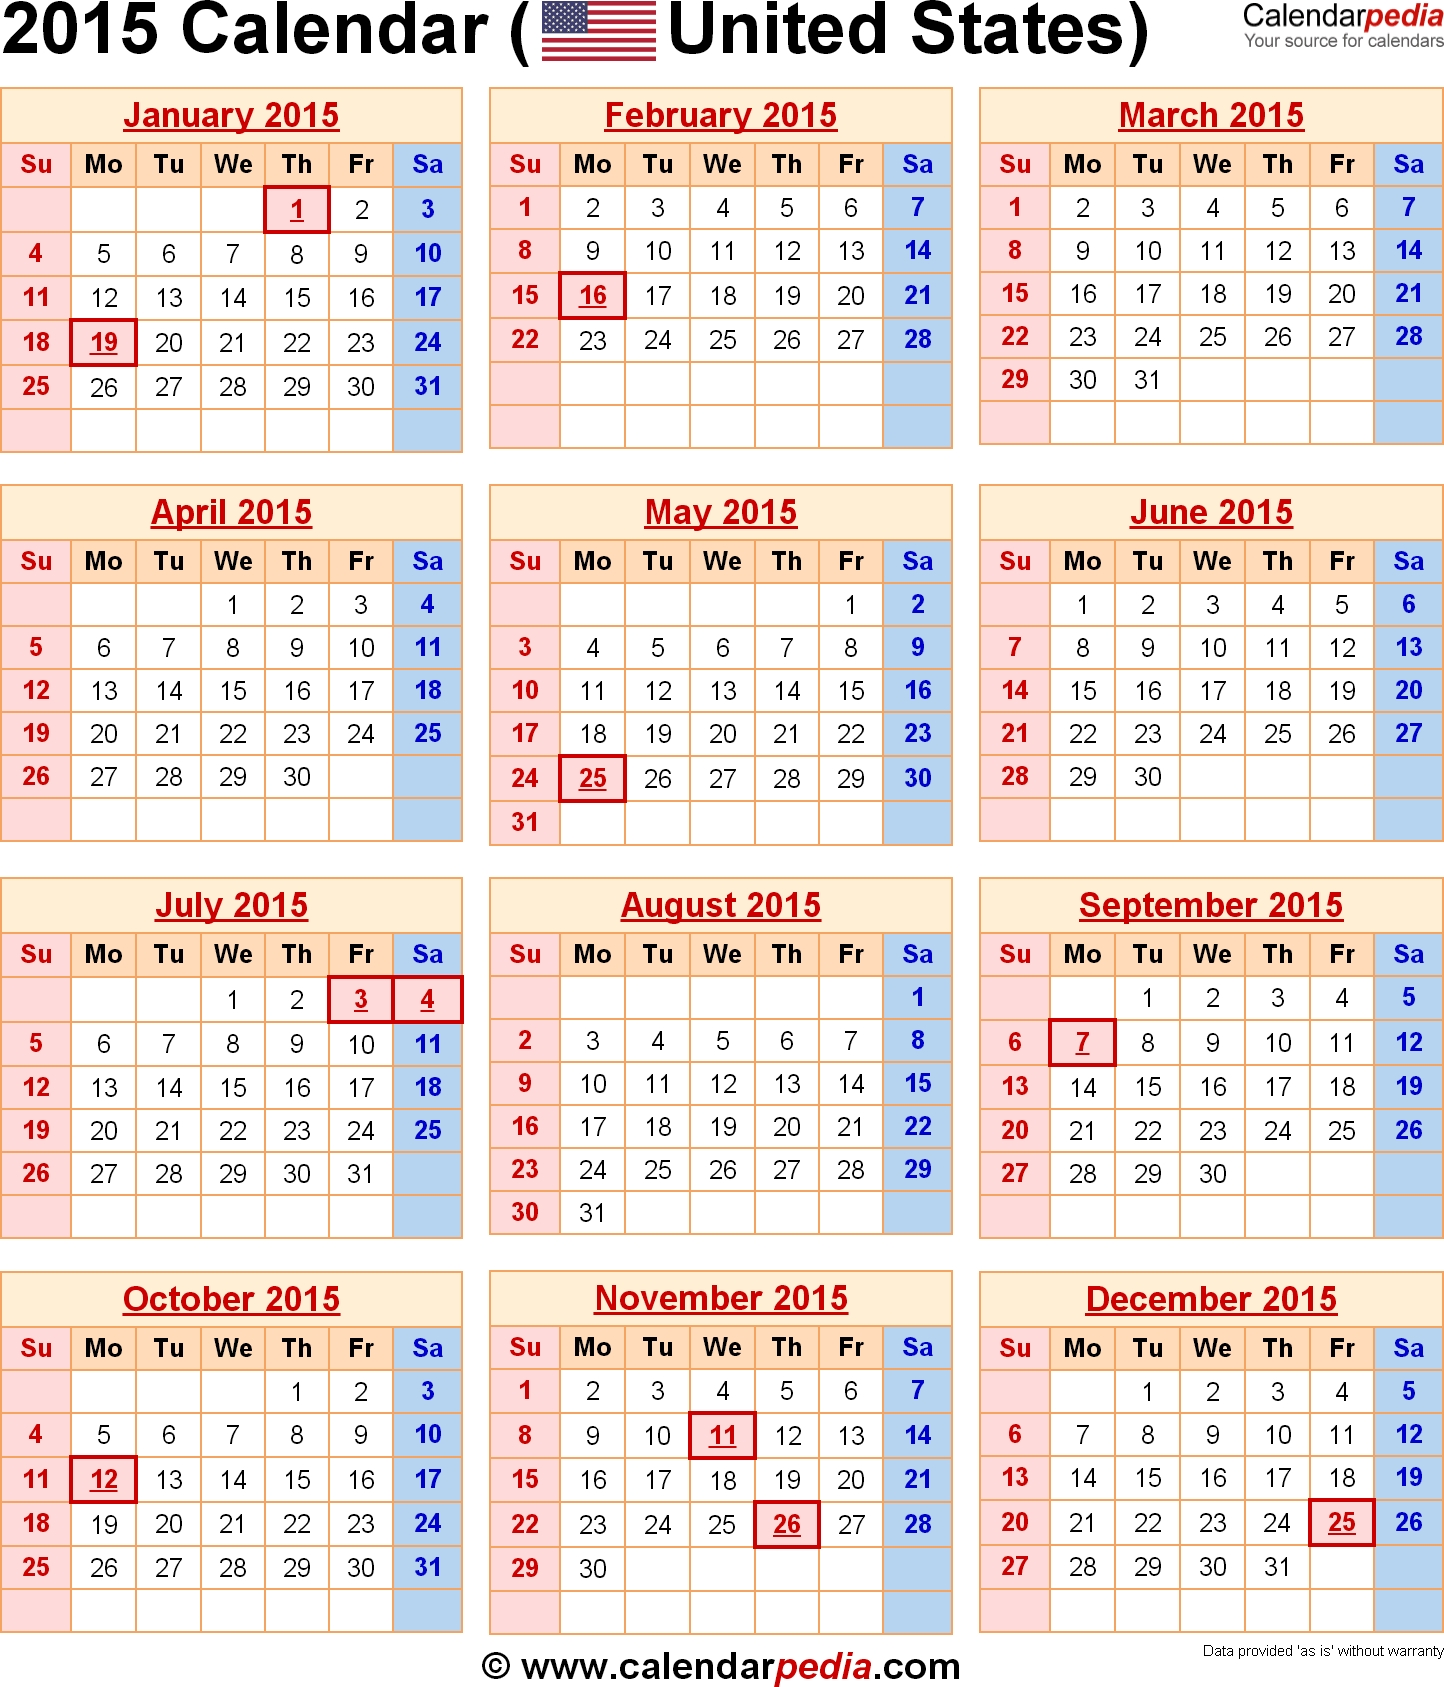 2015 Calendars 2015 Calendar With Federal Holidays Excelpdf